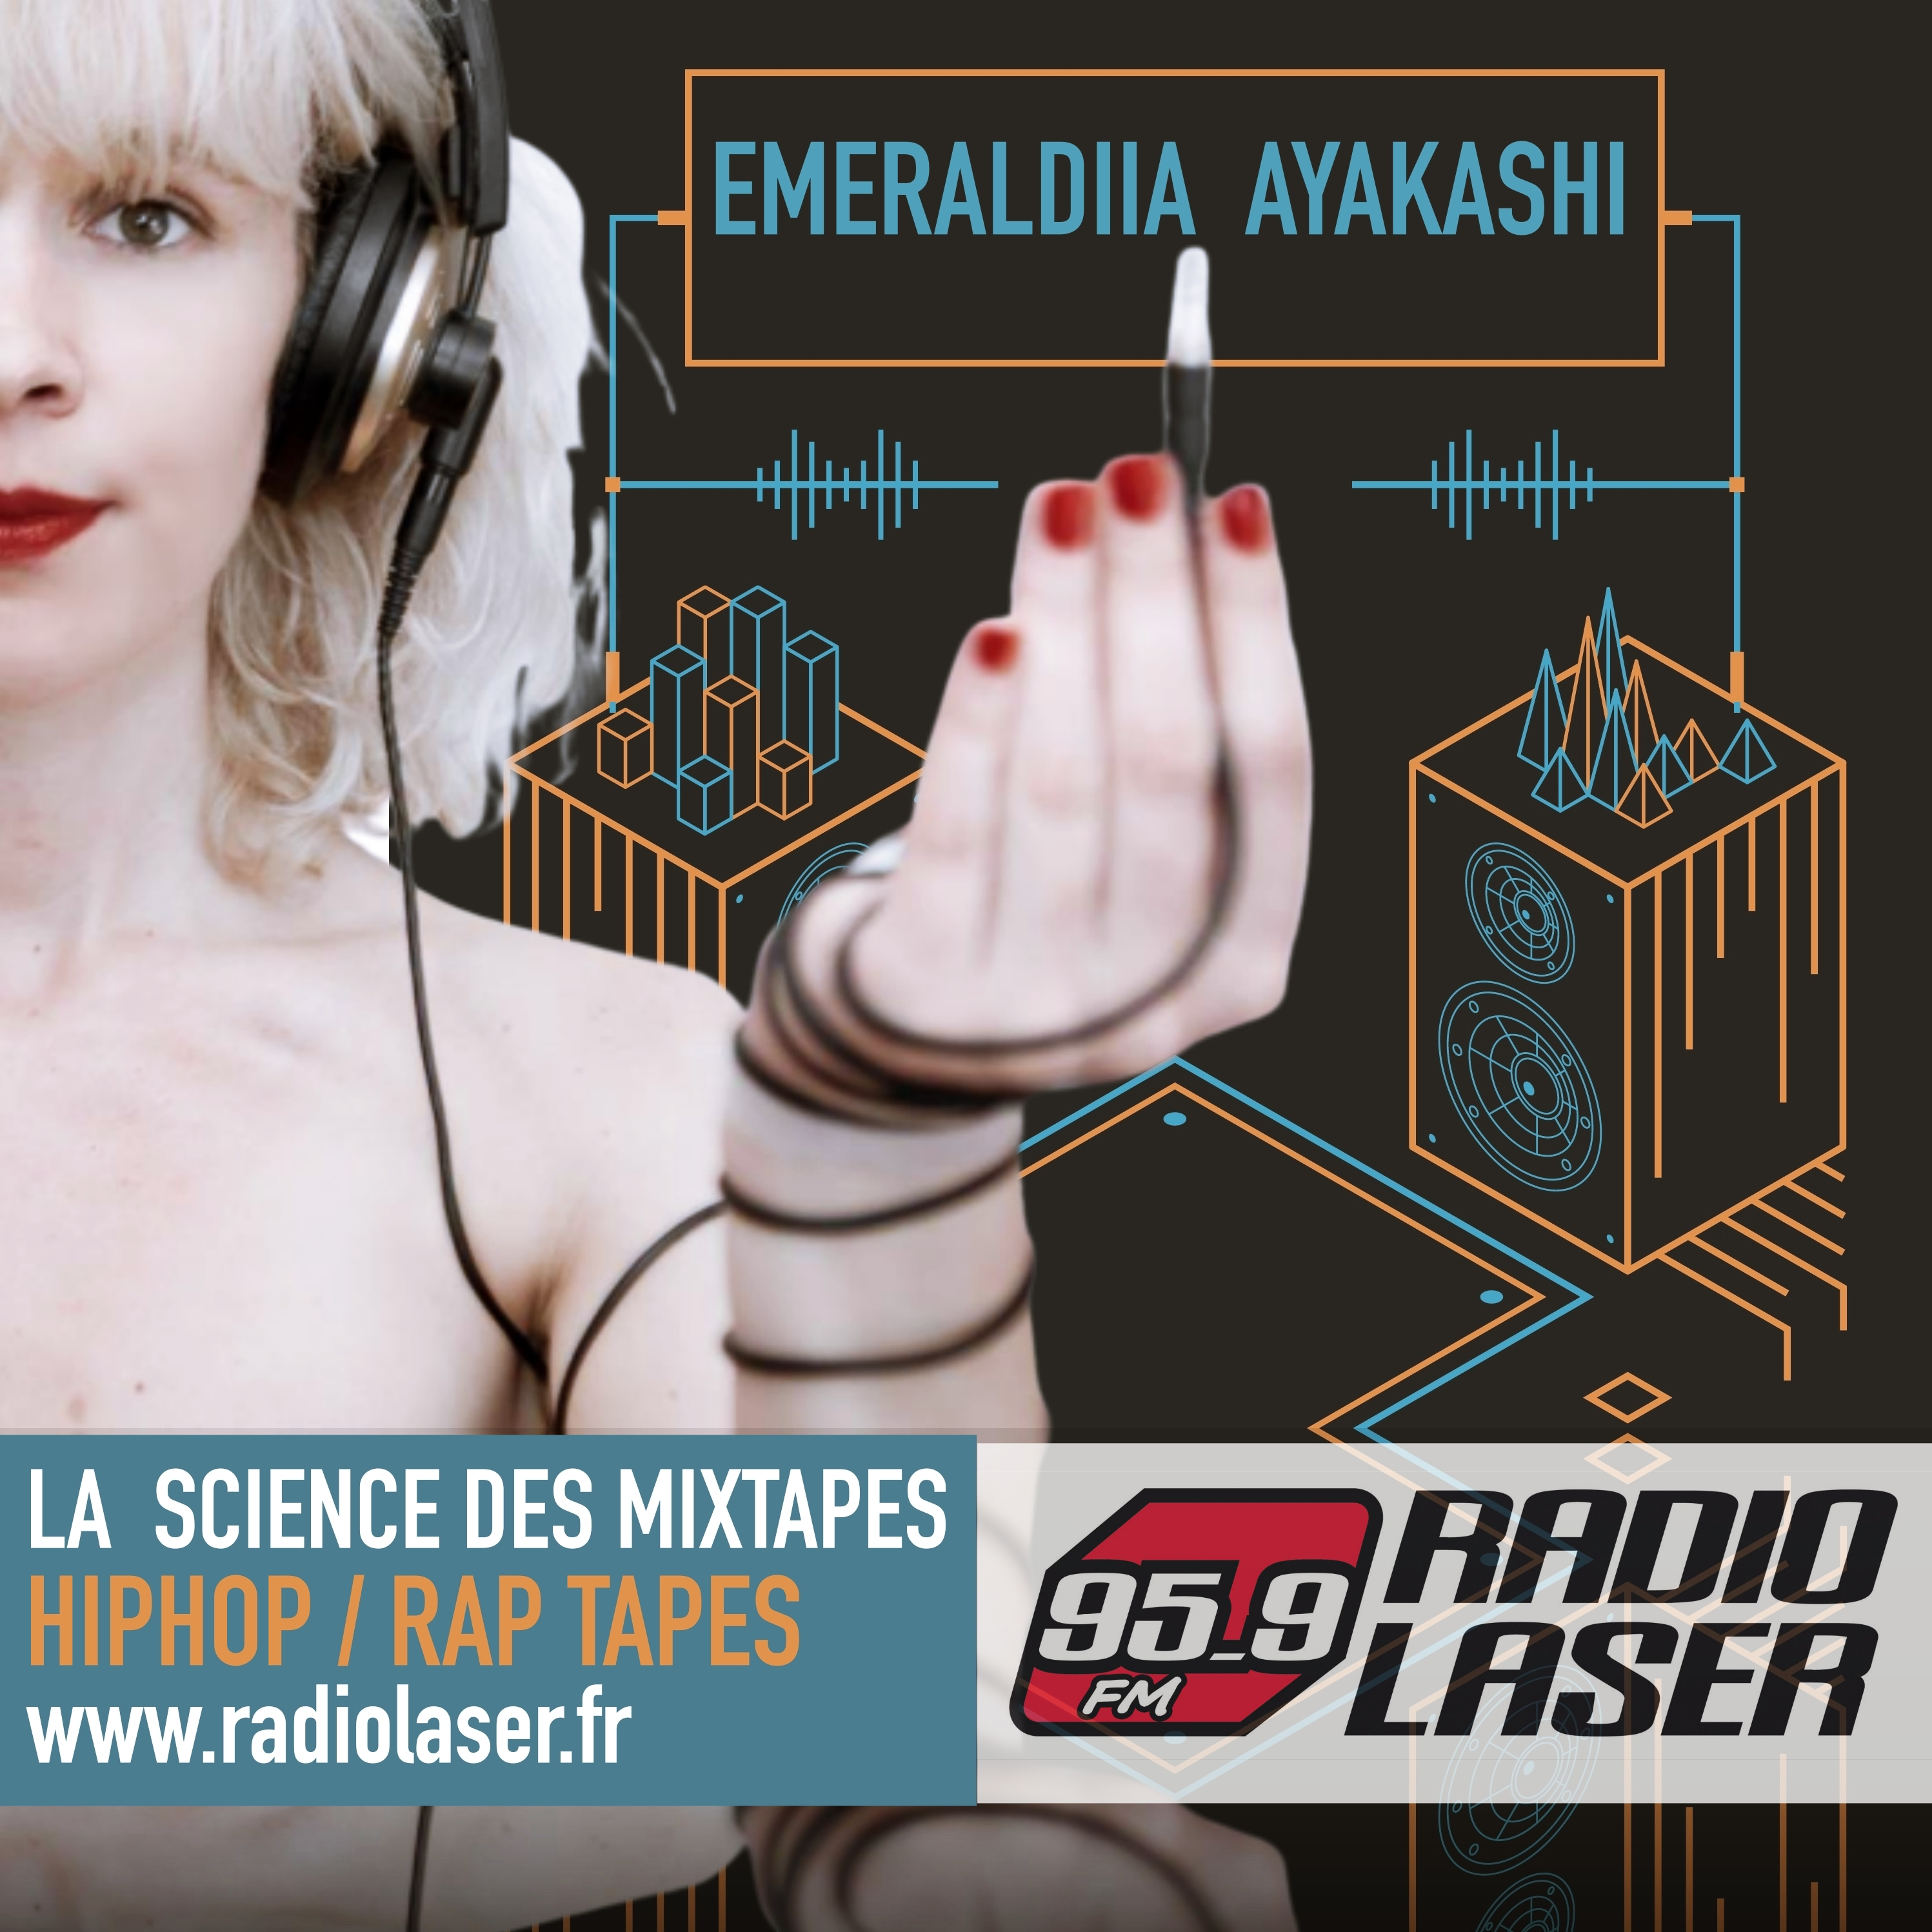 La Science des Mixtapes #12 mixée par Emeraldia Ayakashi